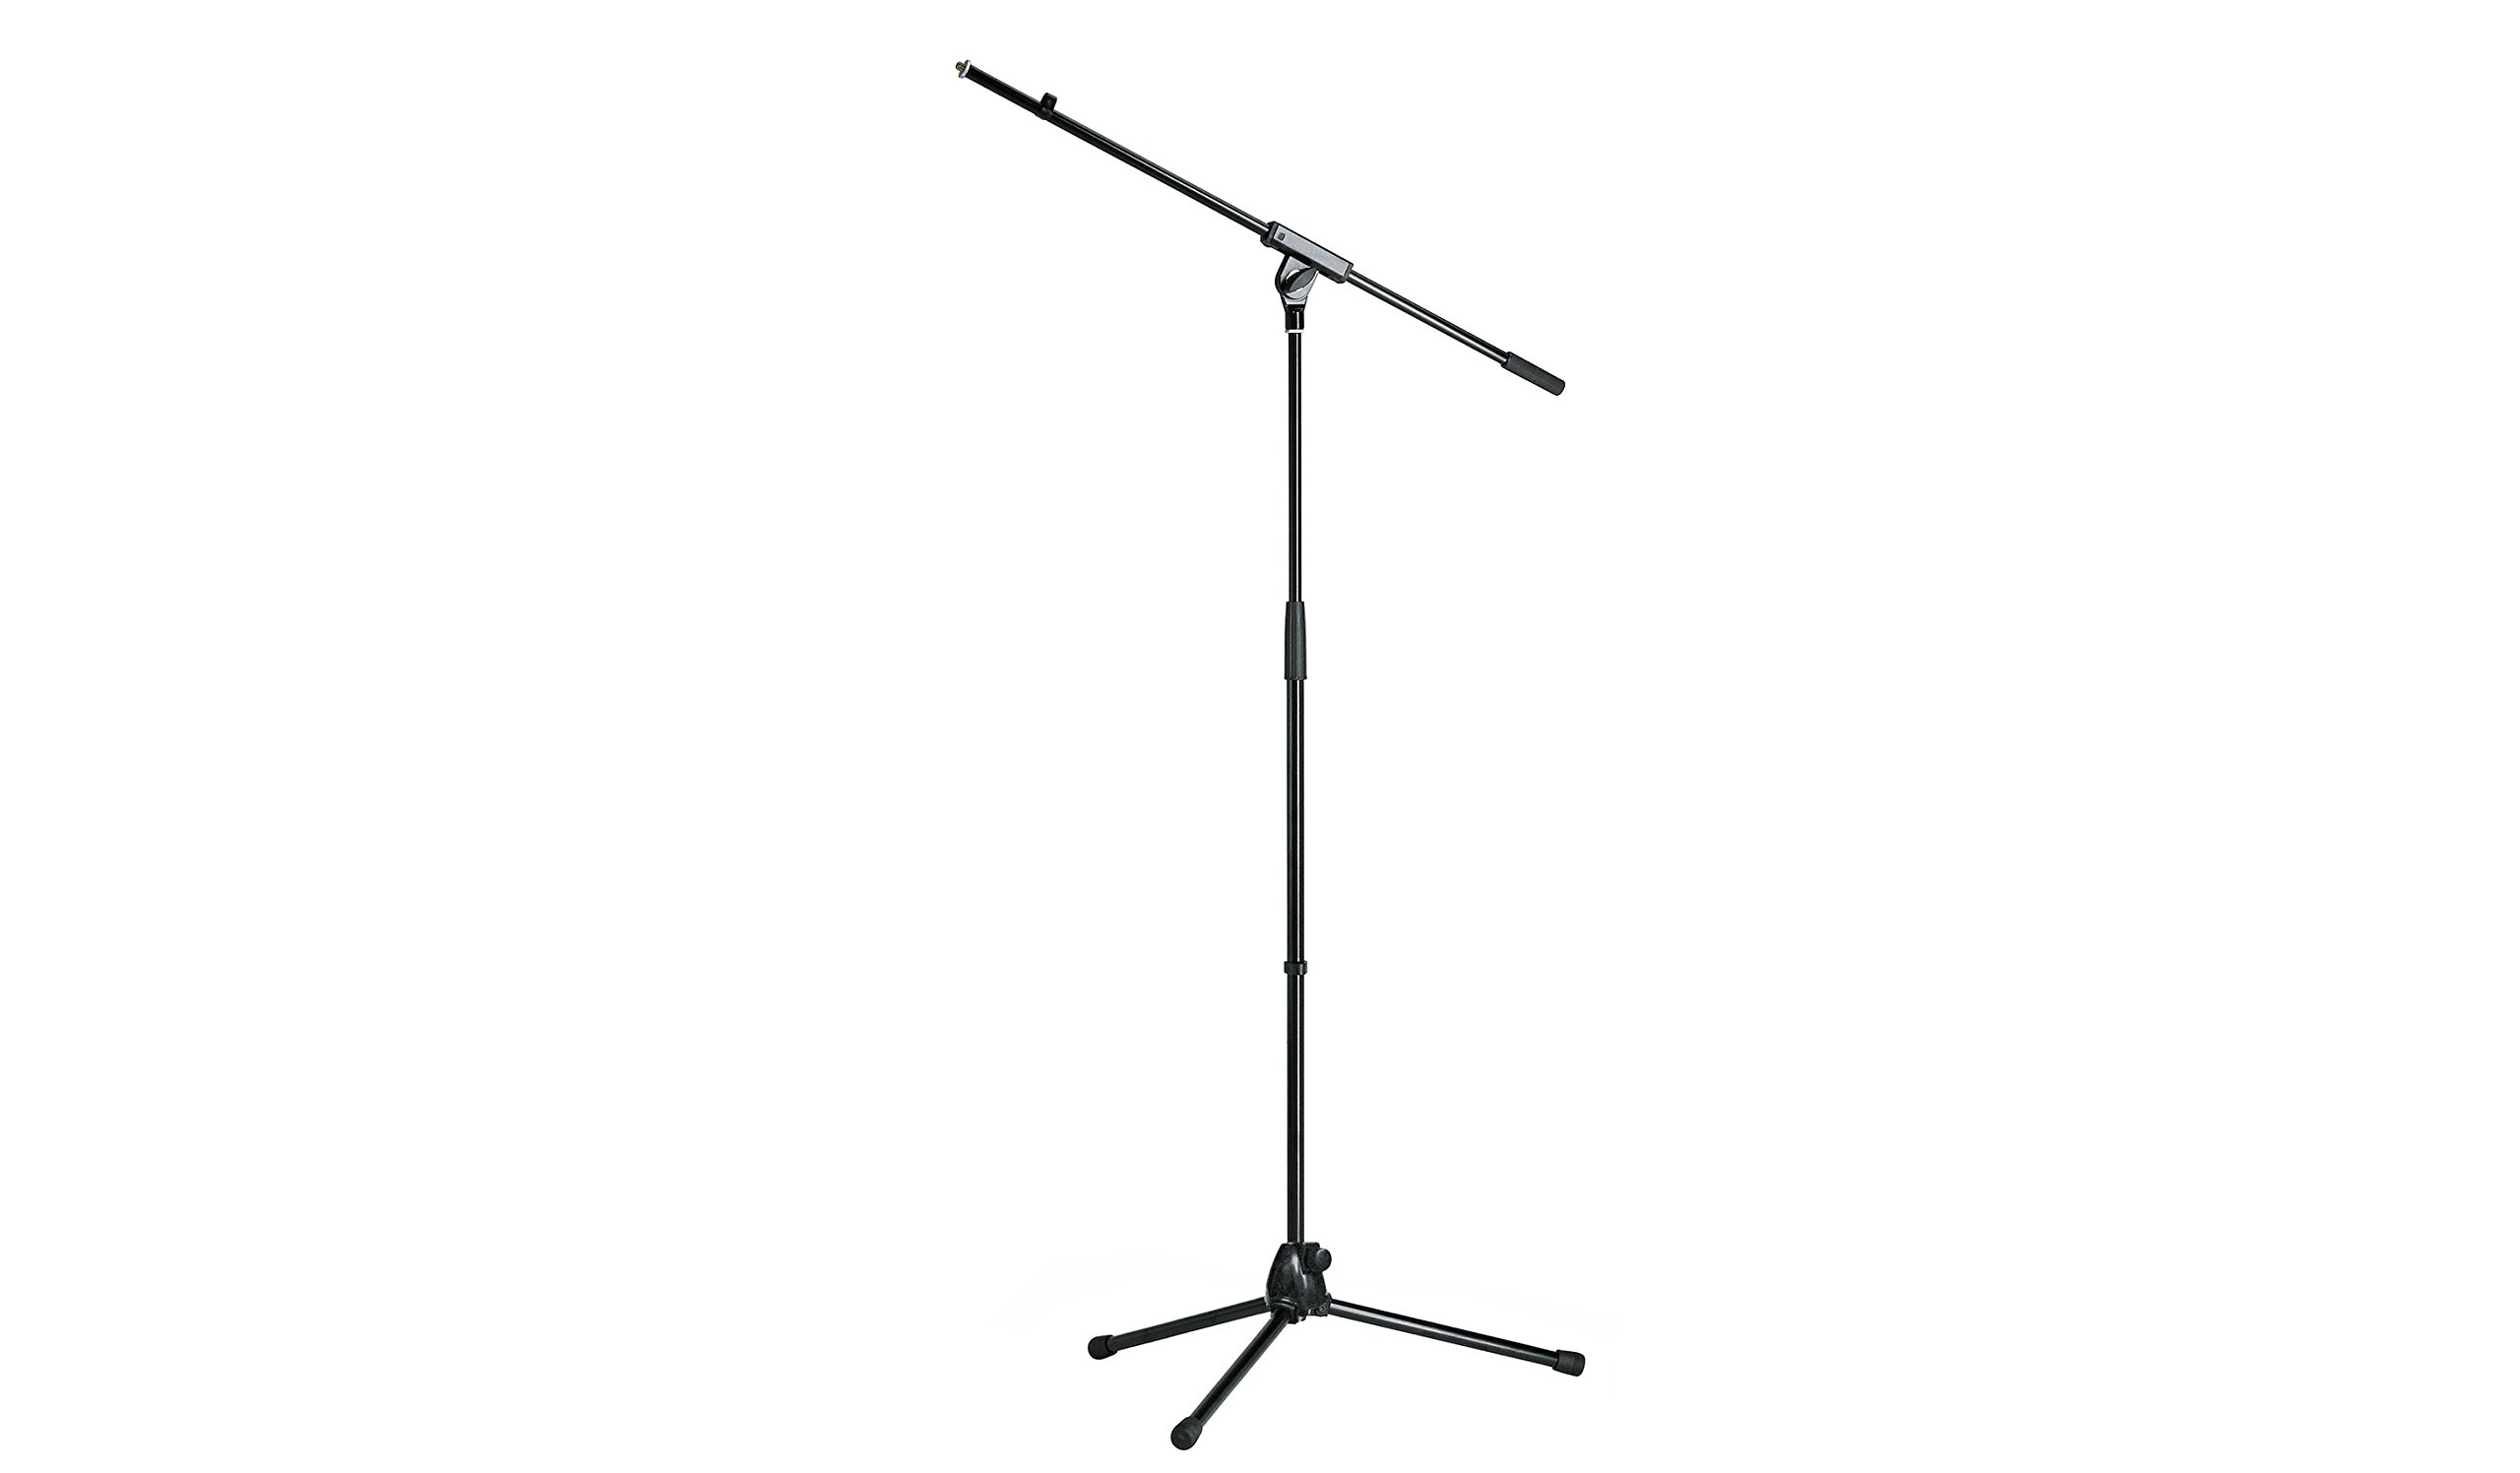 K & M Mic stand with boom arm by K & M